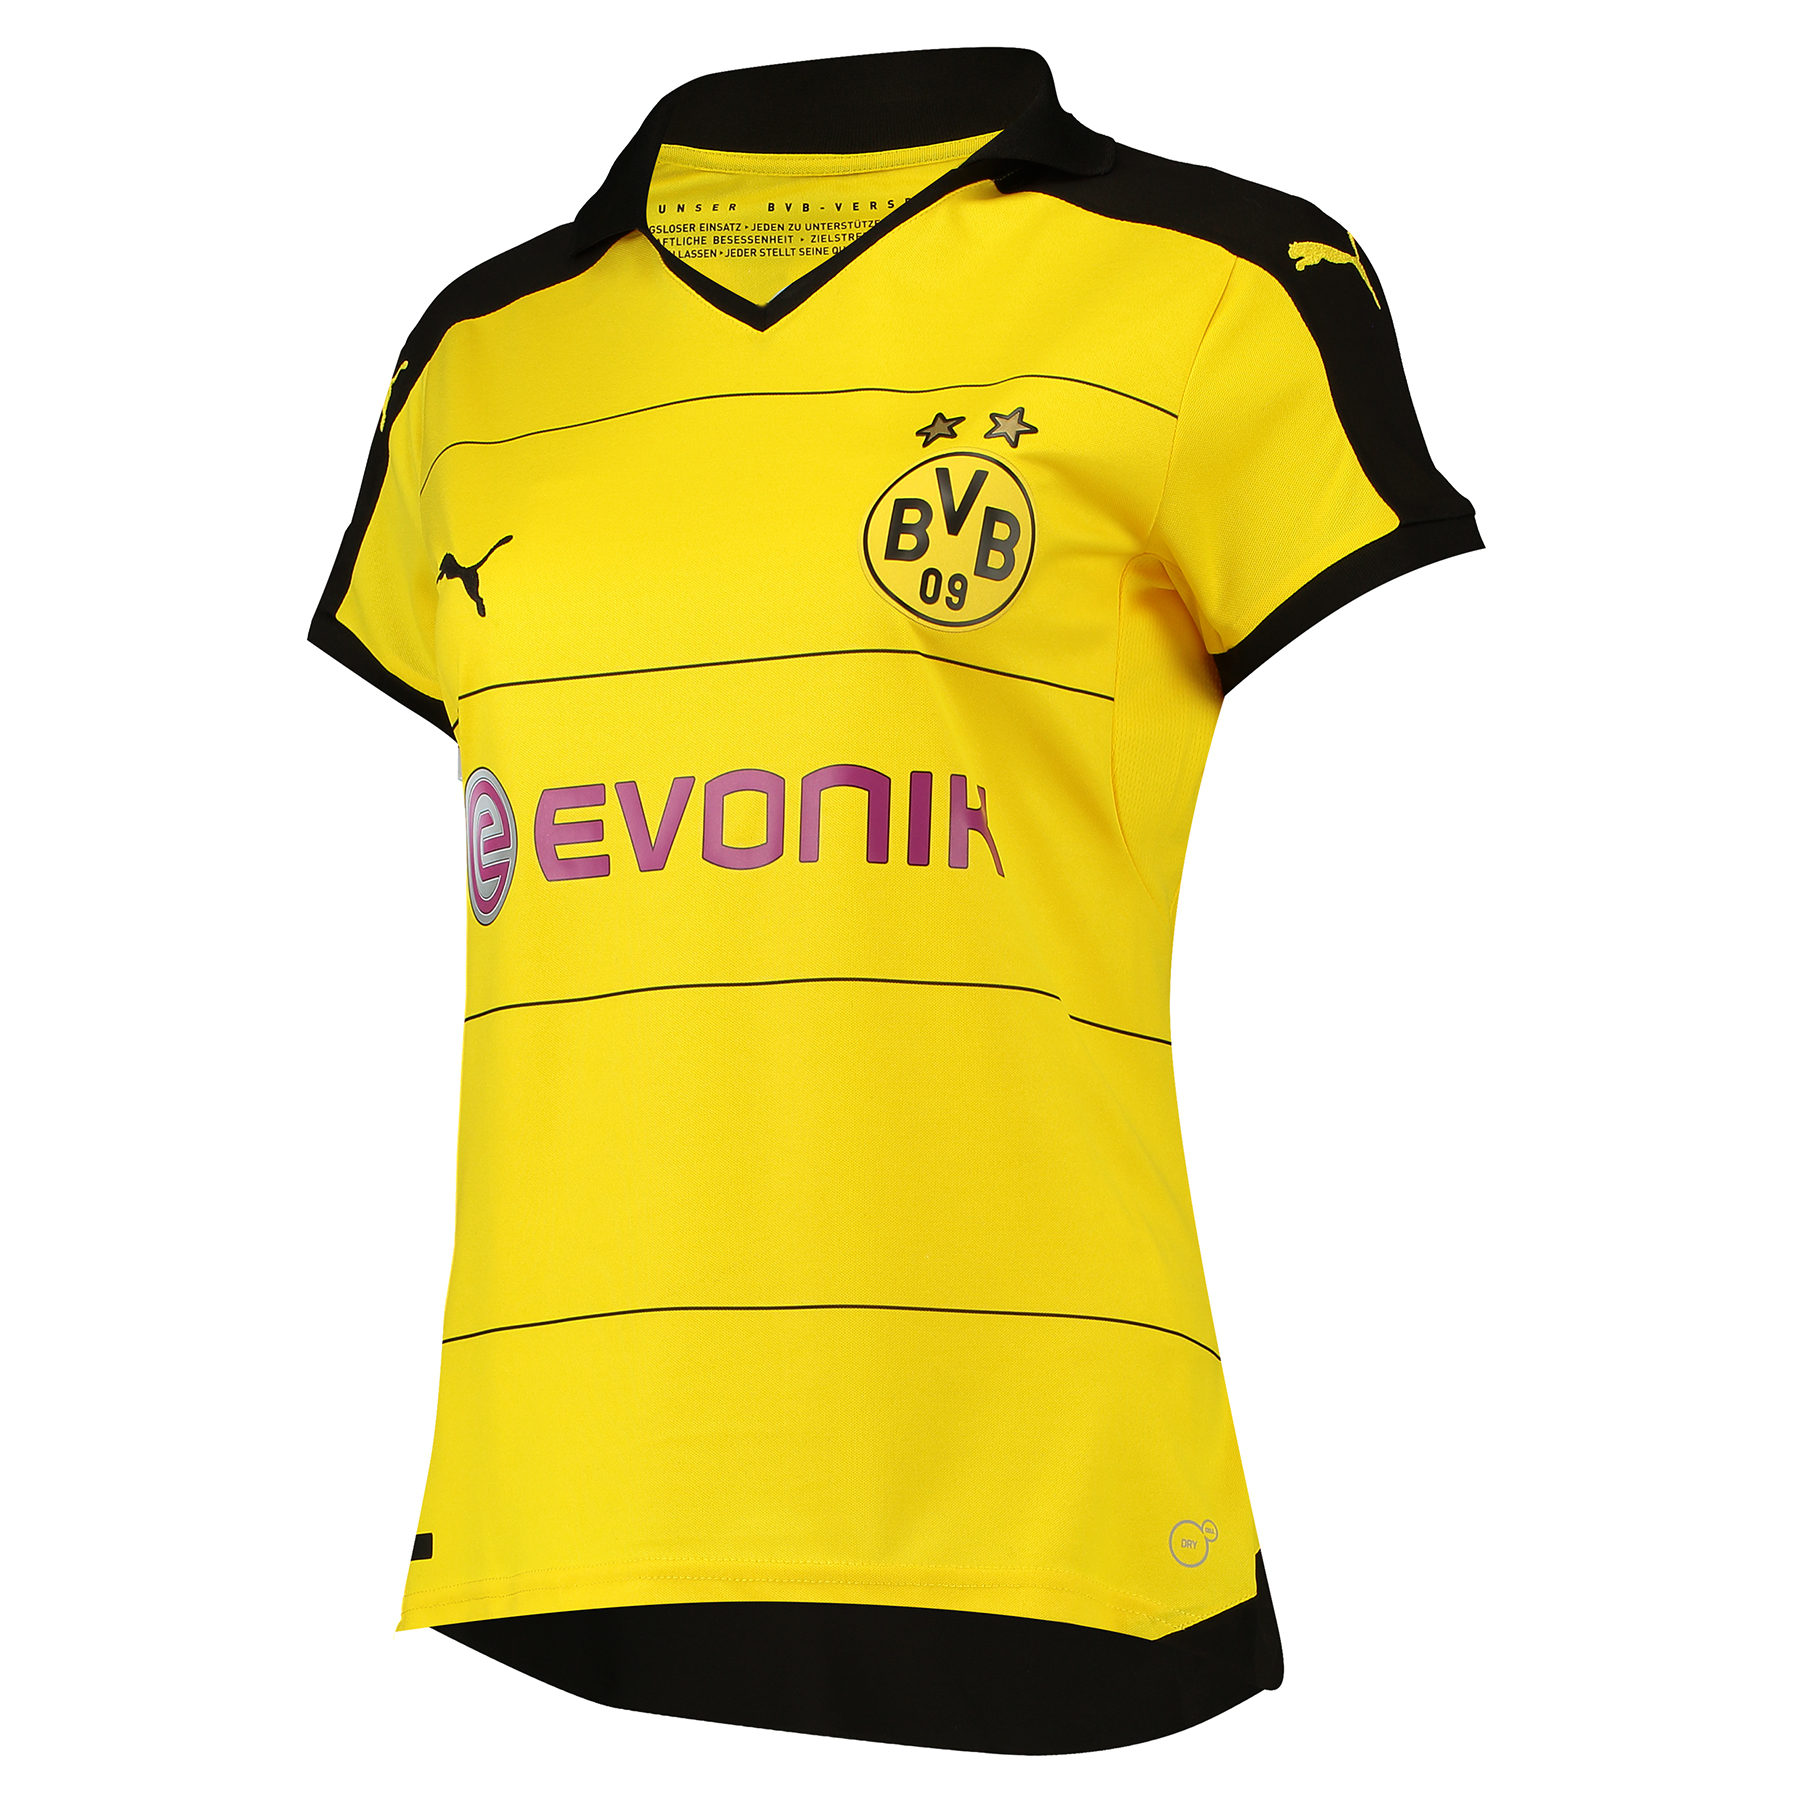 BVB Home Shirt 2015/16 – Womens with Sponsor Yellow